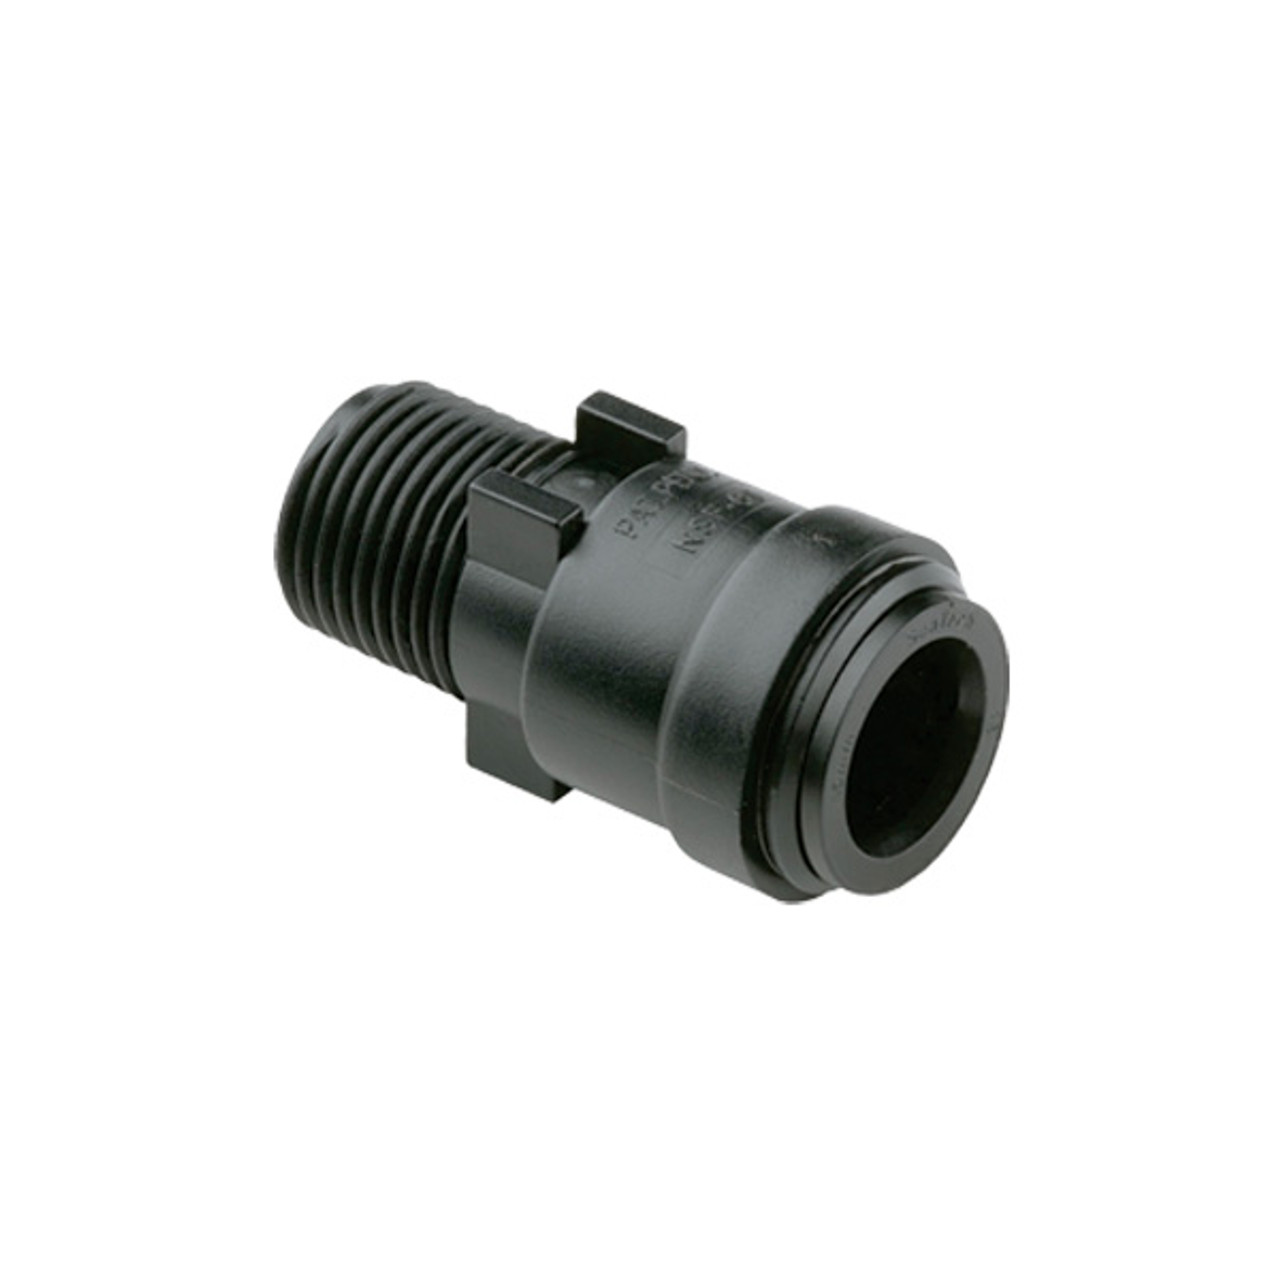 "22mm x ¾"" NPT connector 2902-1222"